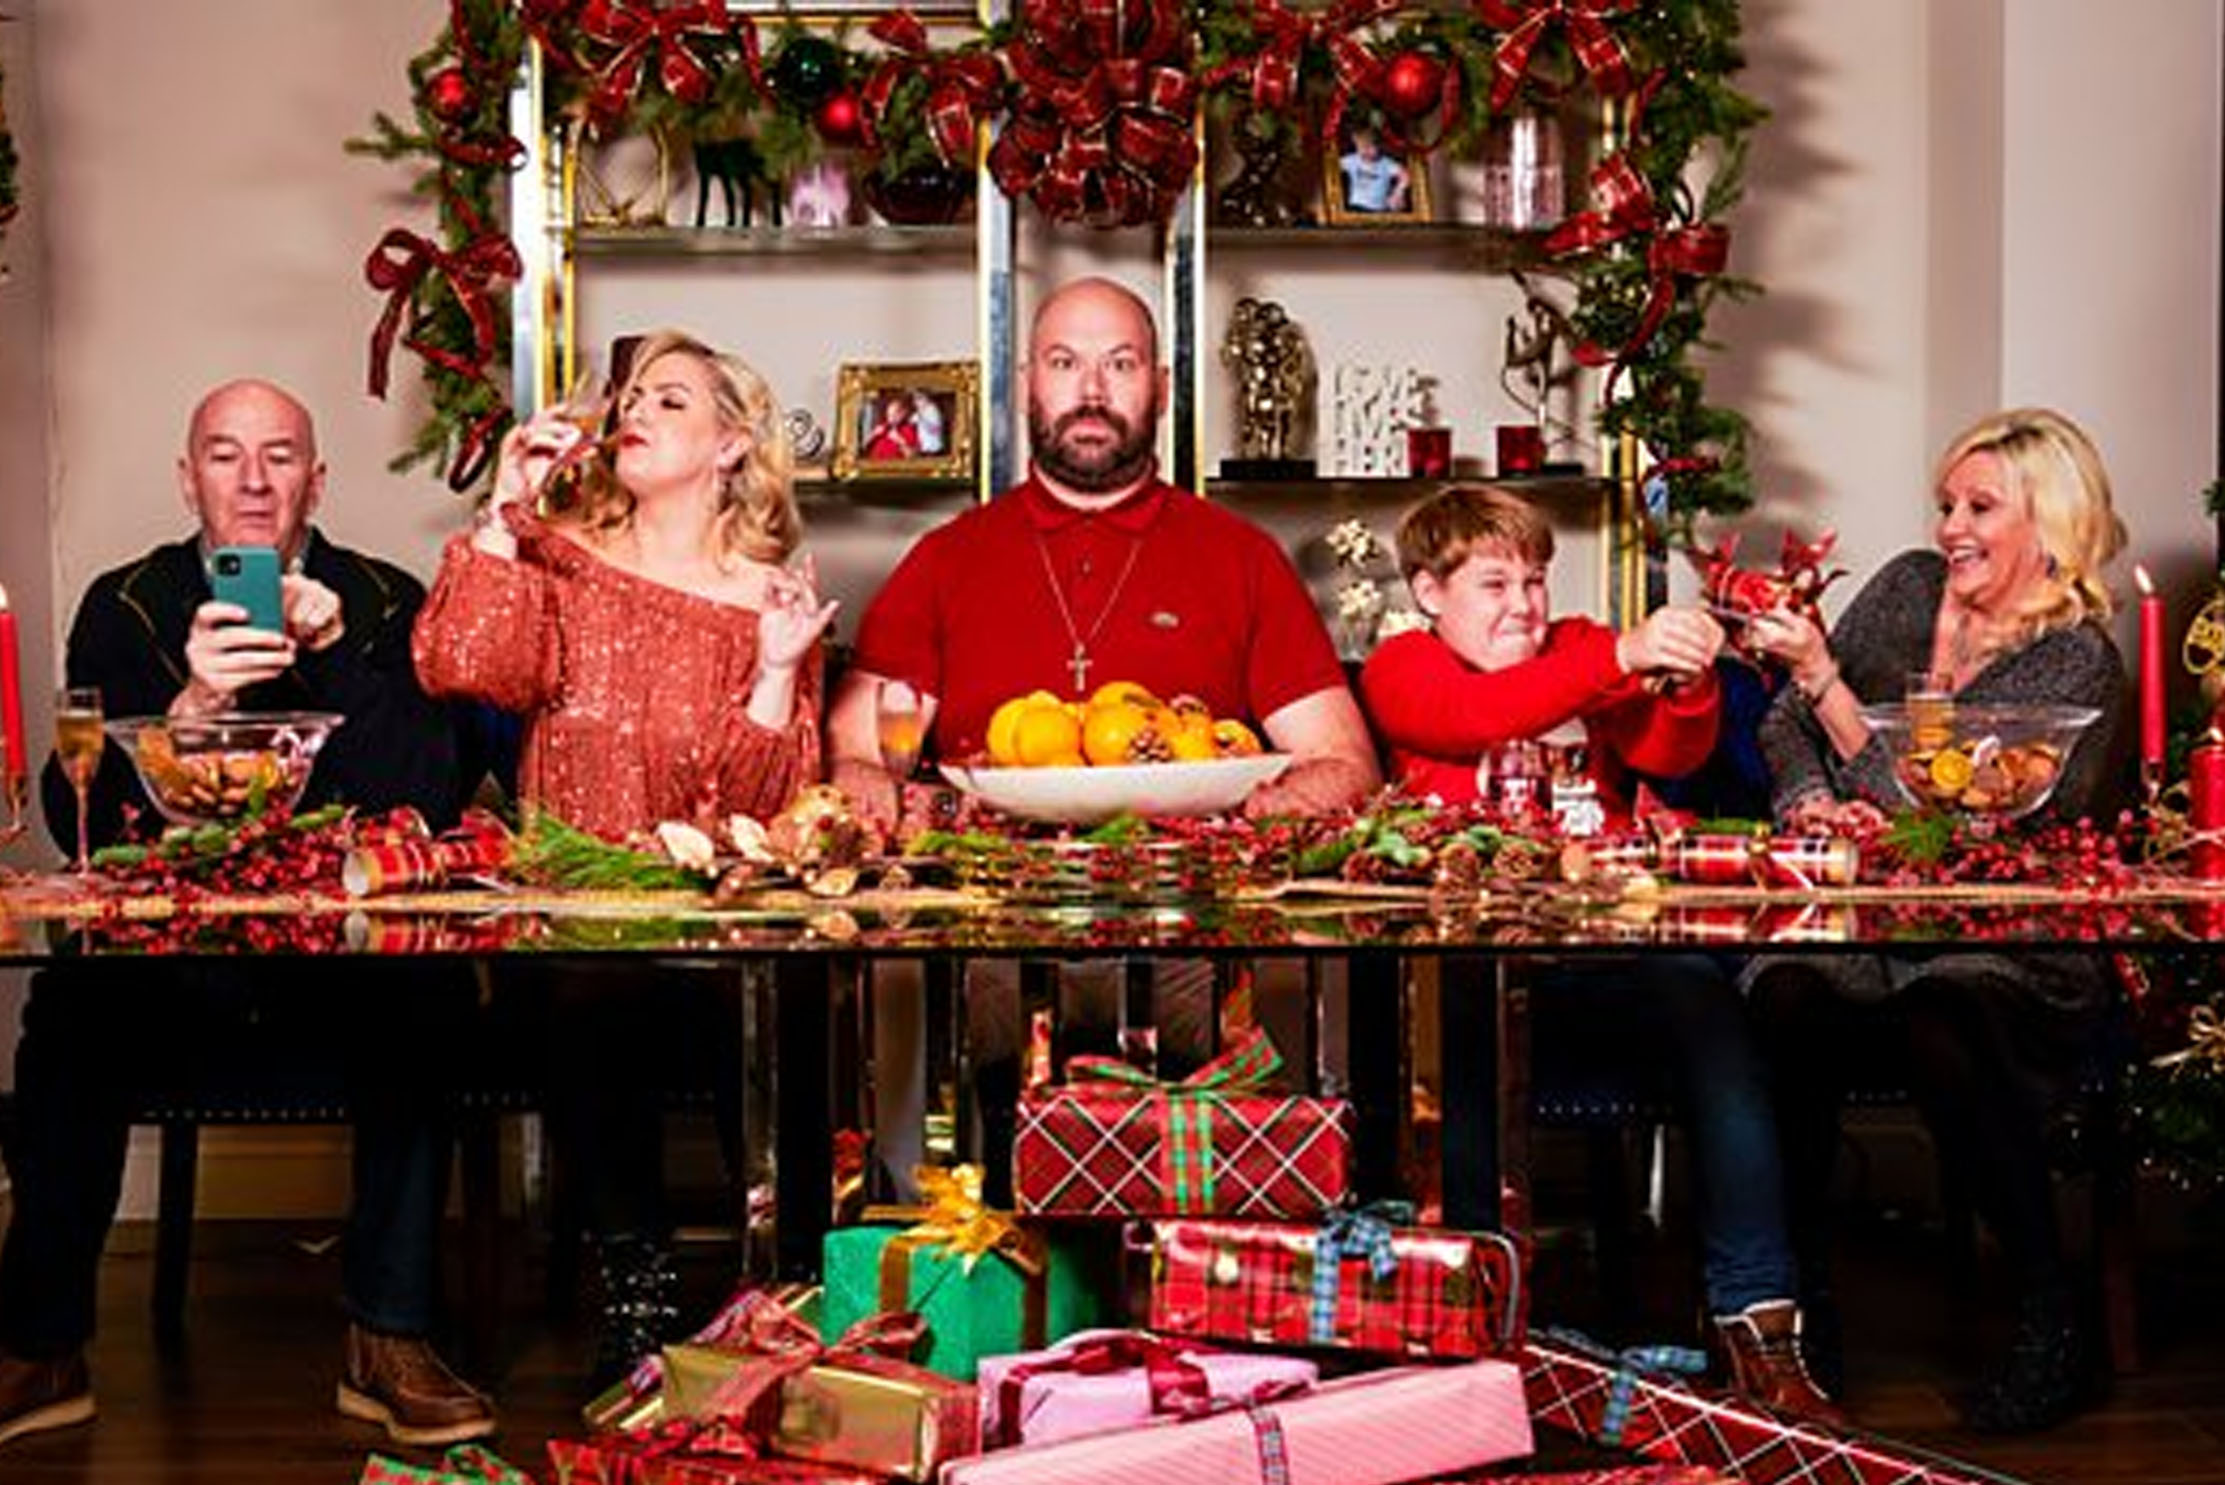 BN1 looks at some unmissable small screen festive fun, in our guide to the best Christmas TV in 2020